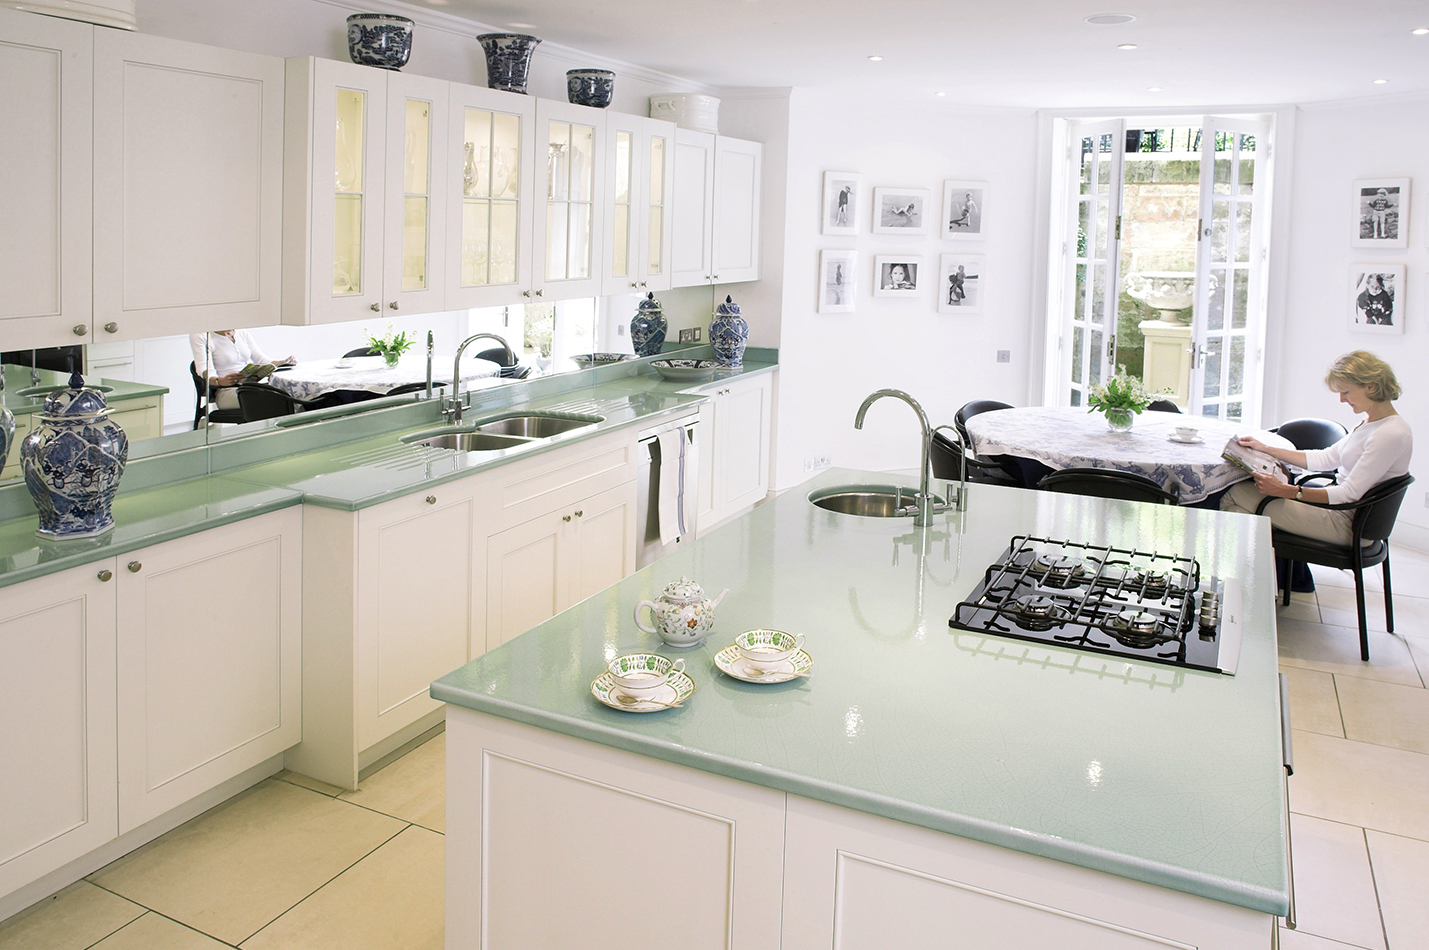 Private Kitchen   Custom Colour   Middlehands (UK)